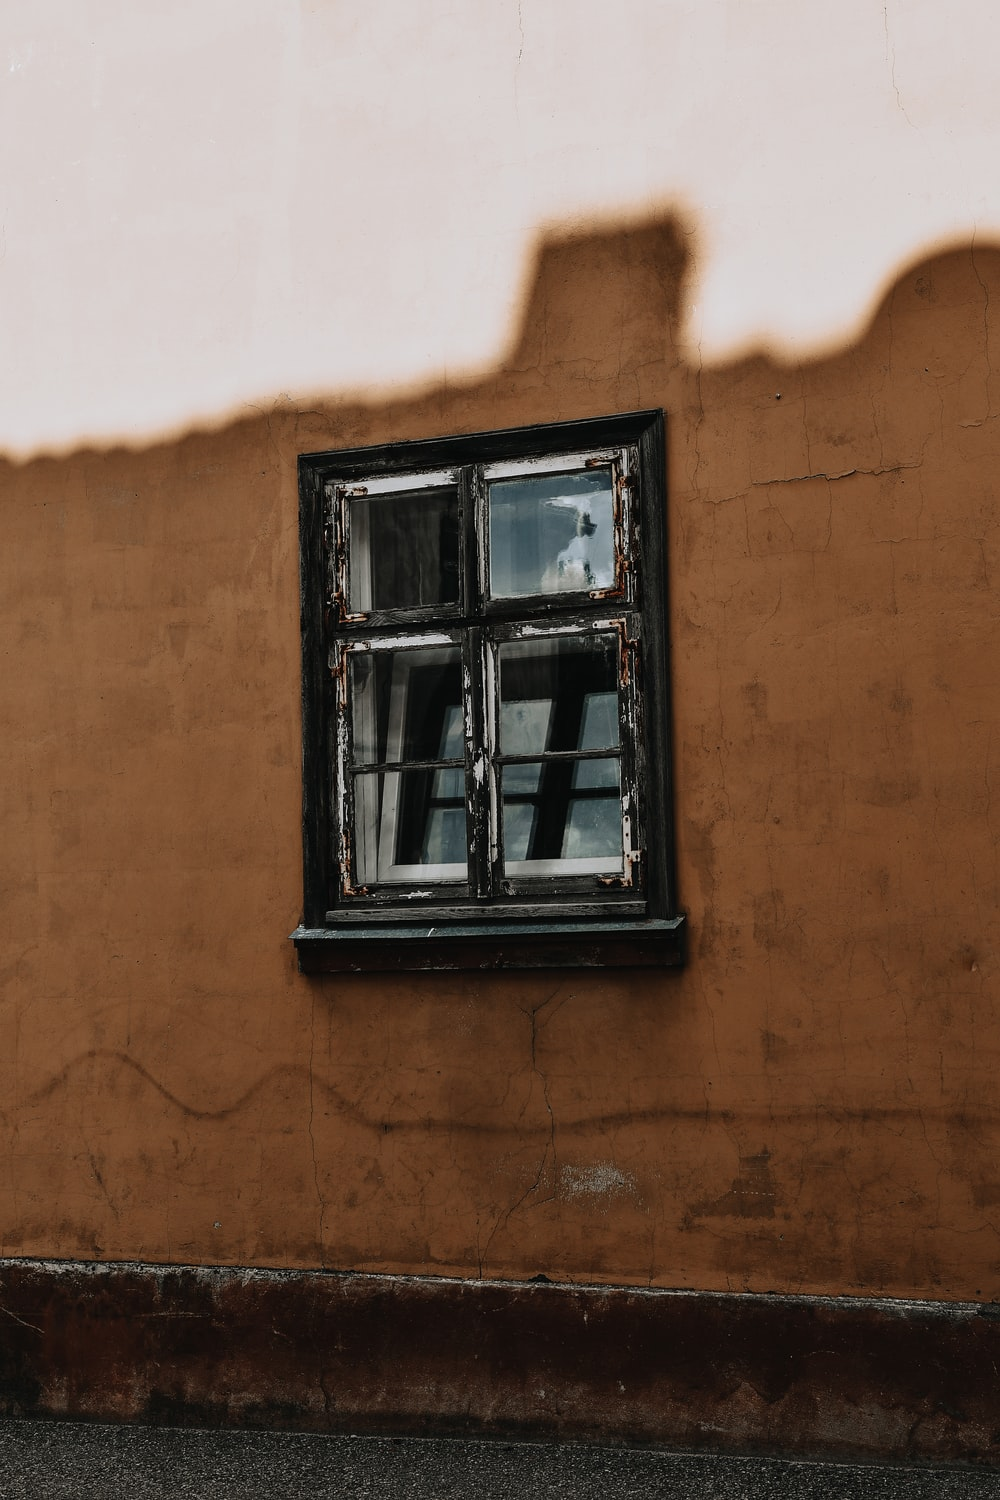 black wooden window frame on brown concrete wall